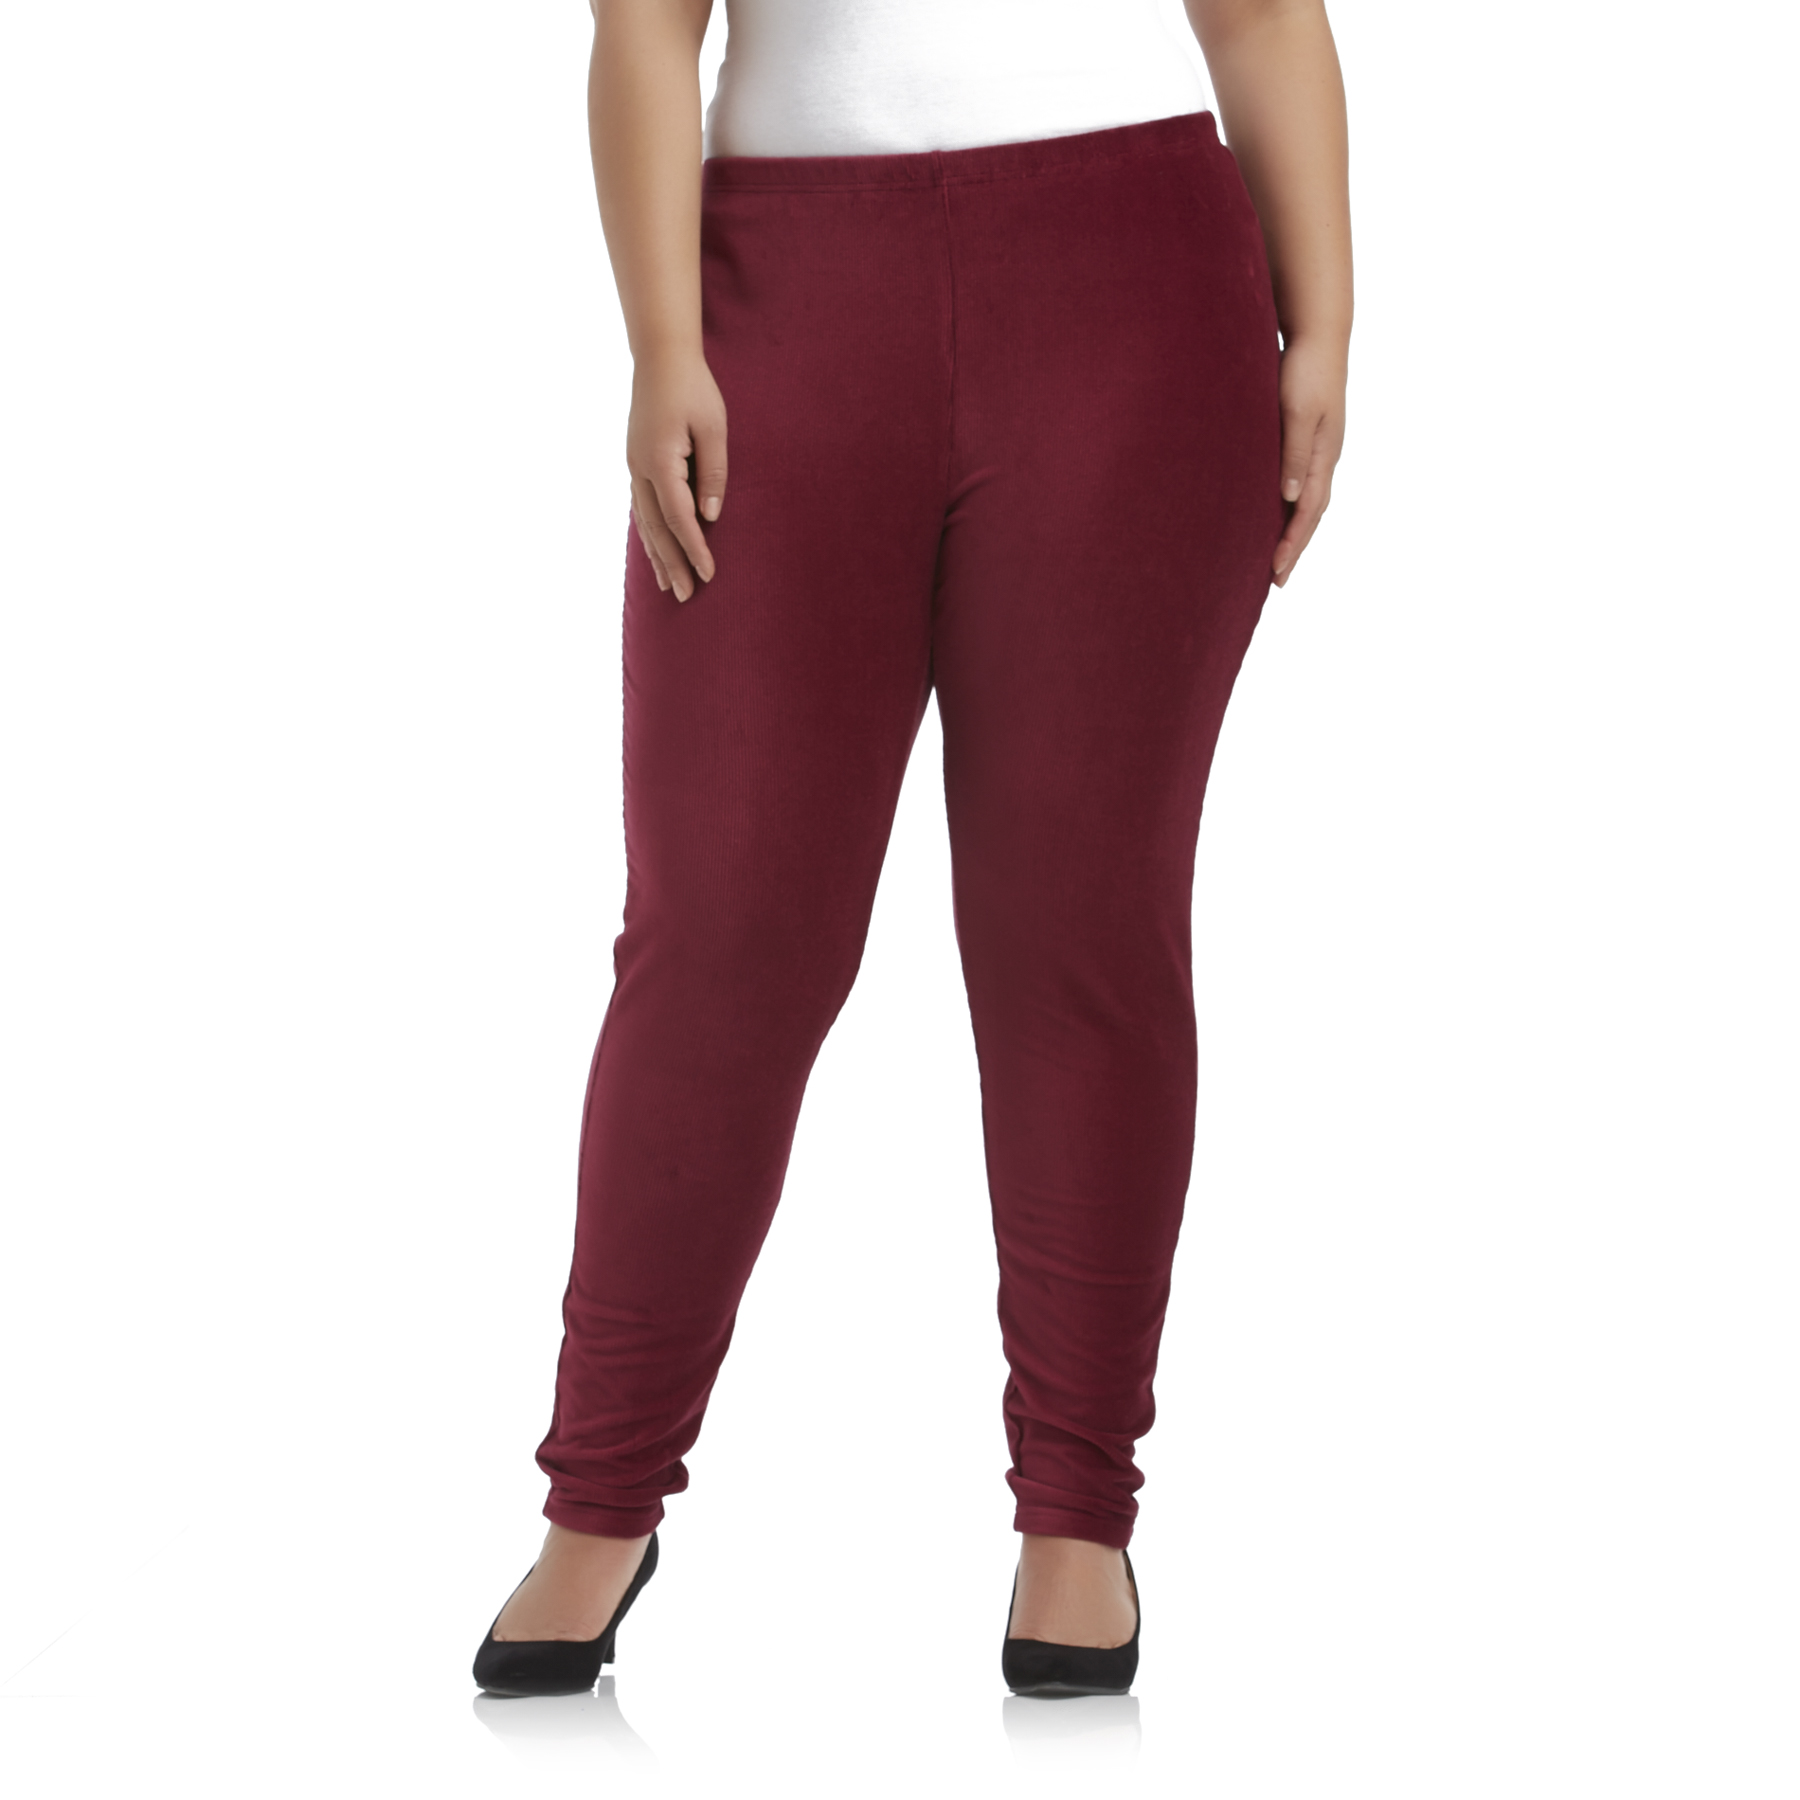 plus size pants at kmart photo - 2